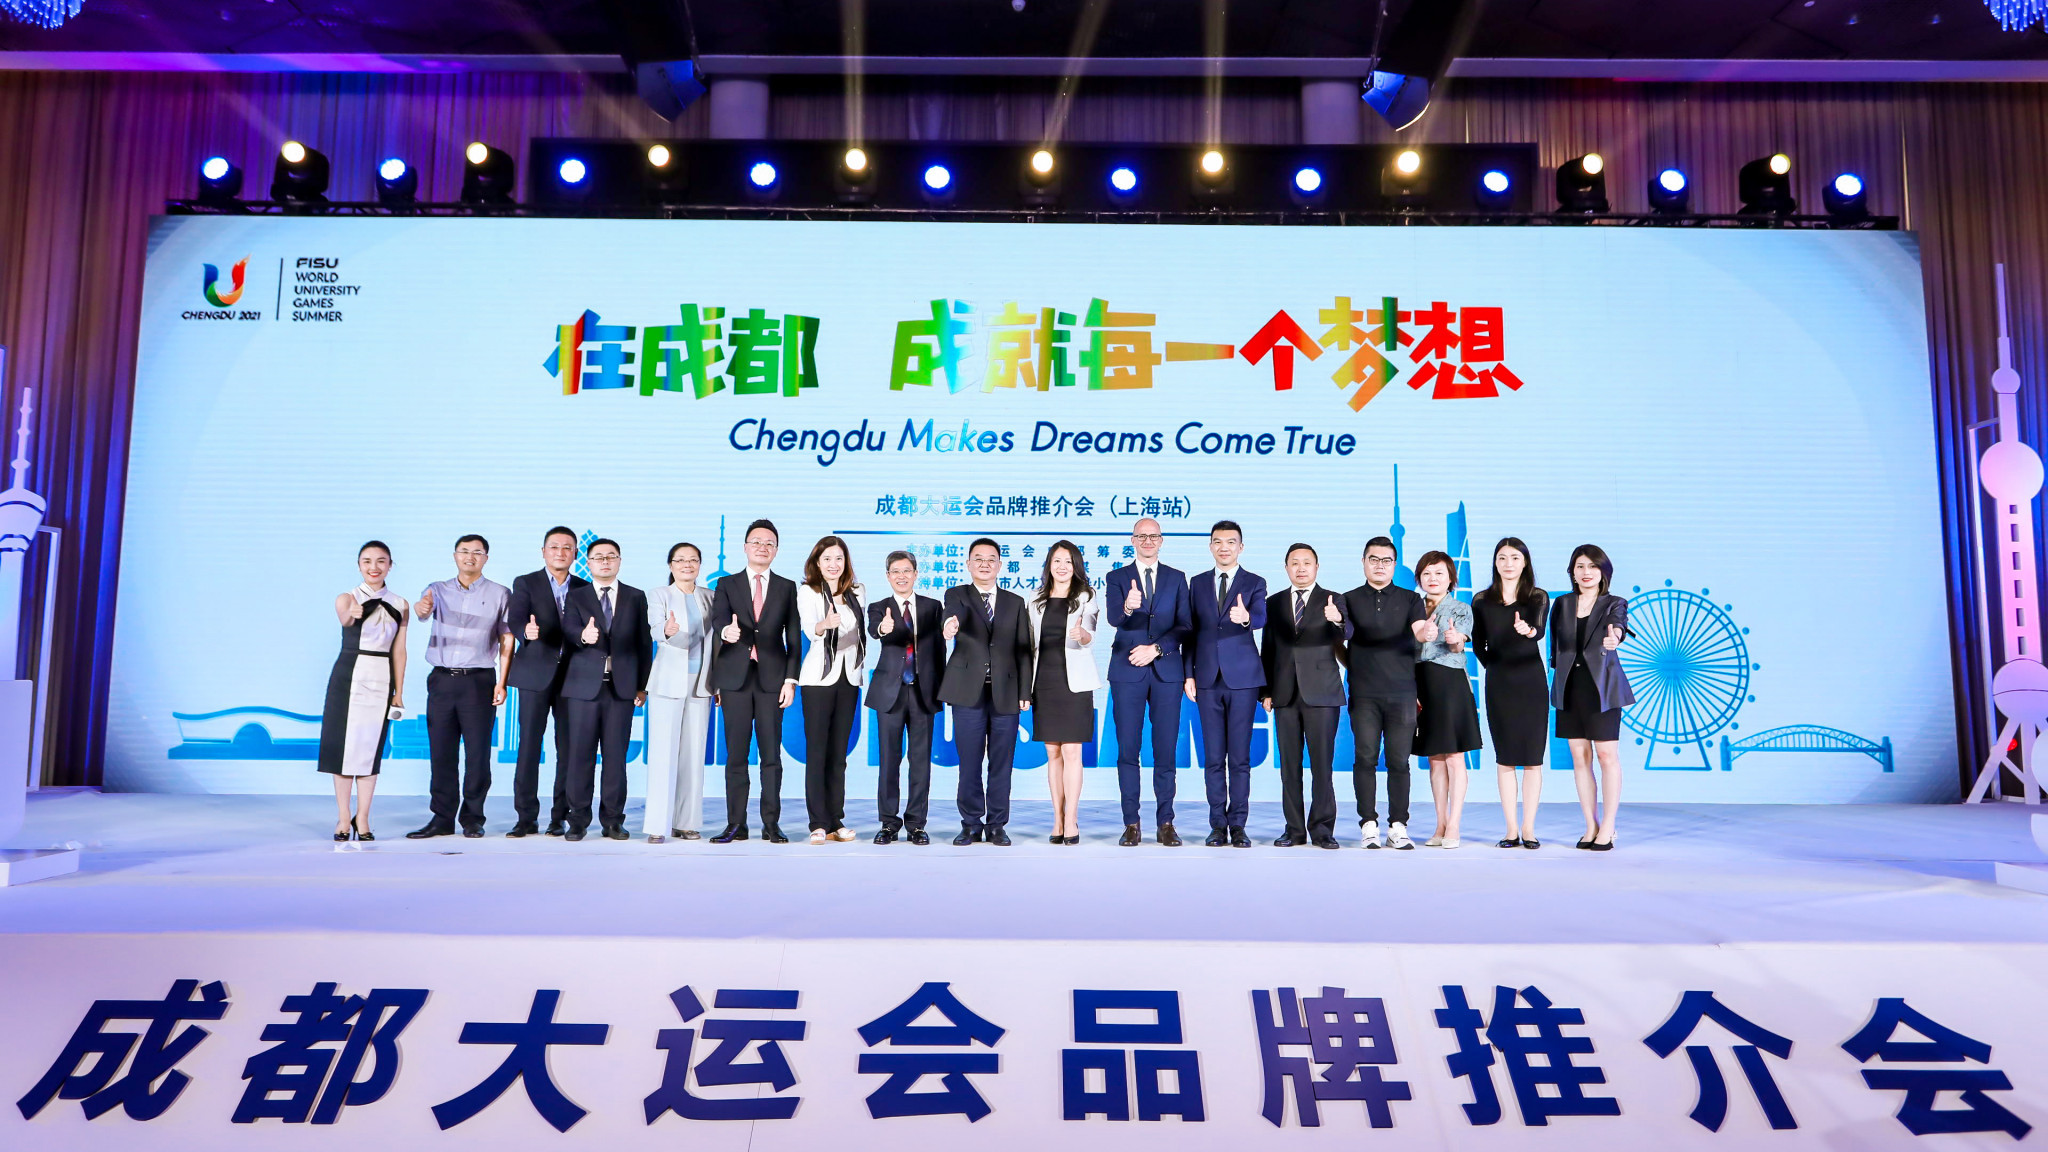 Chengdu 2021 announces sponsorship agreements at Shanghai press conference